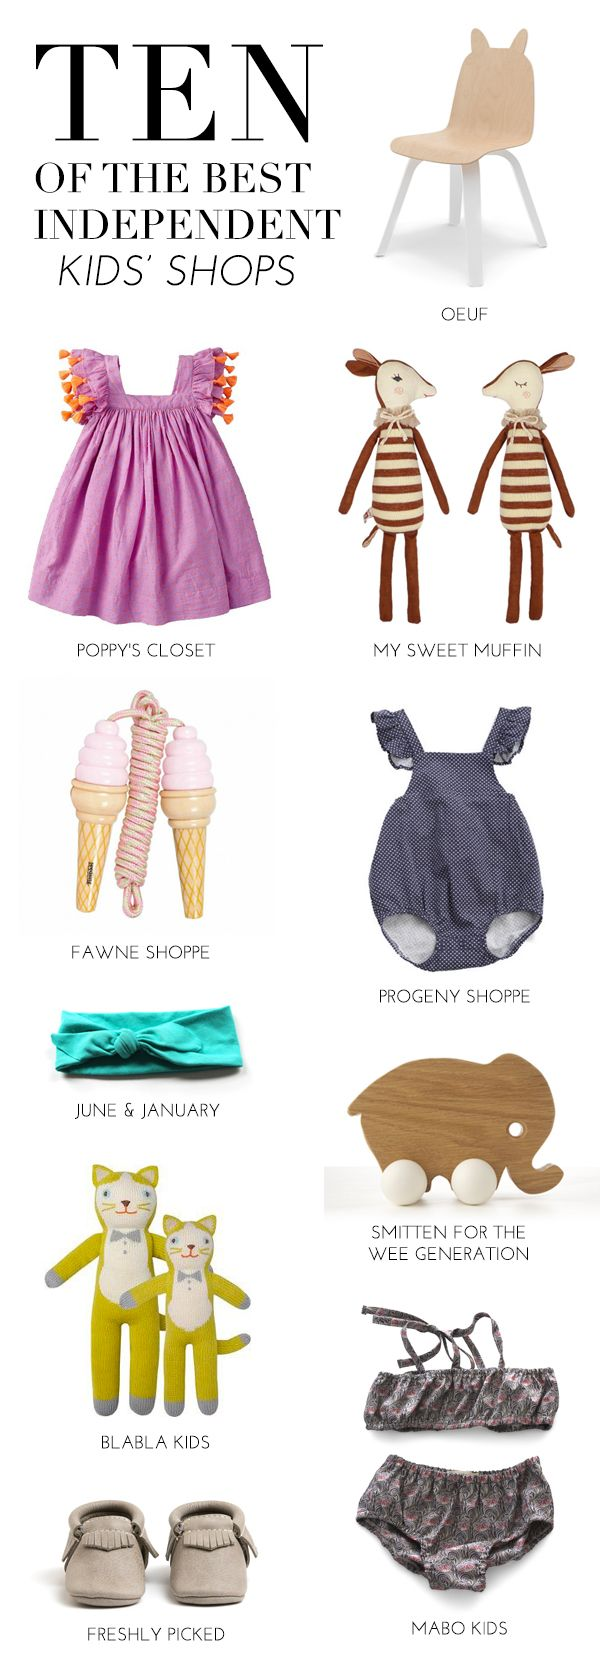 10 of the best independent kids' shops